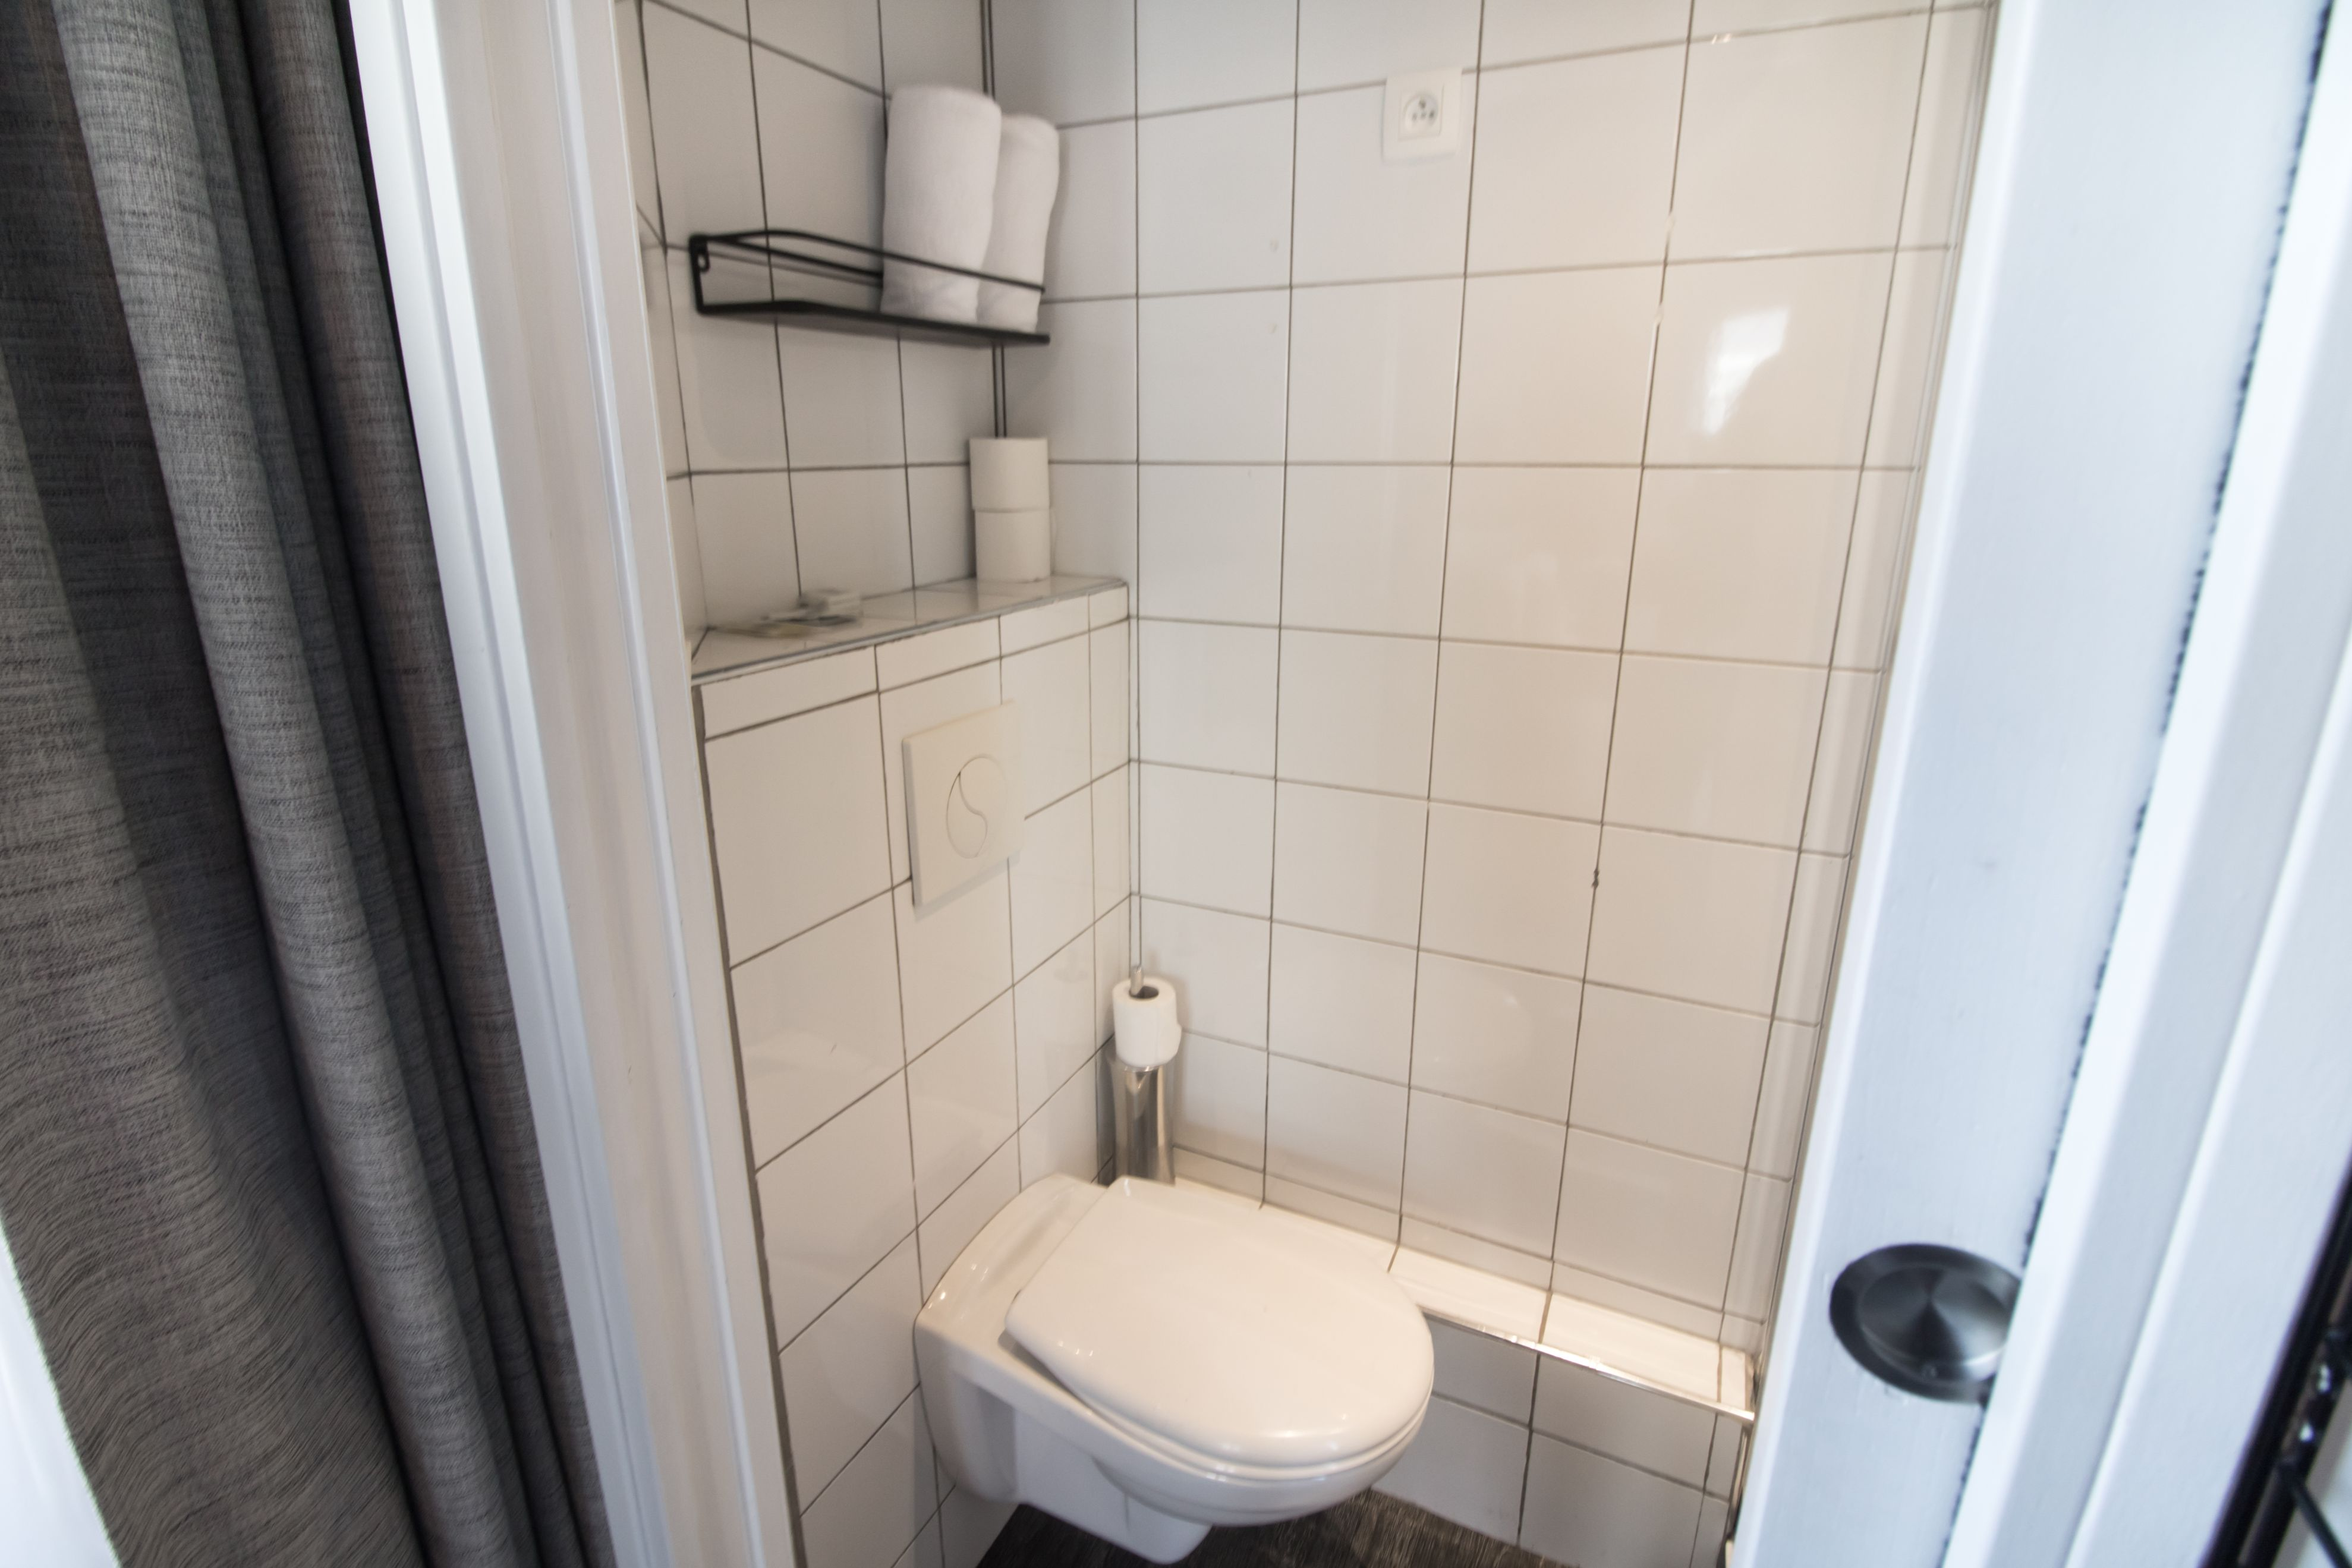 Clean, minimalistic white bathroom with toilet, toilet paper and towels. Hotel Baby Paris Review: The Best Budget Hotel in Paris. Paris hotel. Paris hotels. Paris France. Paris budget hotels. Best hotels in Paris. Paris accommodation. Cheap hotels in Paris. Paris hotel deals. Places to stay in Paris. Top hotels in Paris. Paris hotel booking. Where to stay in Paris. Cheap accommodation in Paris. Hotels in central Paris. Paris travel blog. Paris travel guide. Things to do in Paris. What to do in Paris. Places to See in Paris. Things to see in Paris. What to see in Paris. Click through to read more...